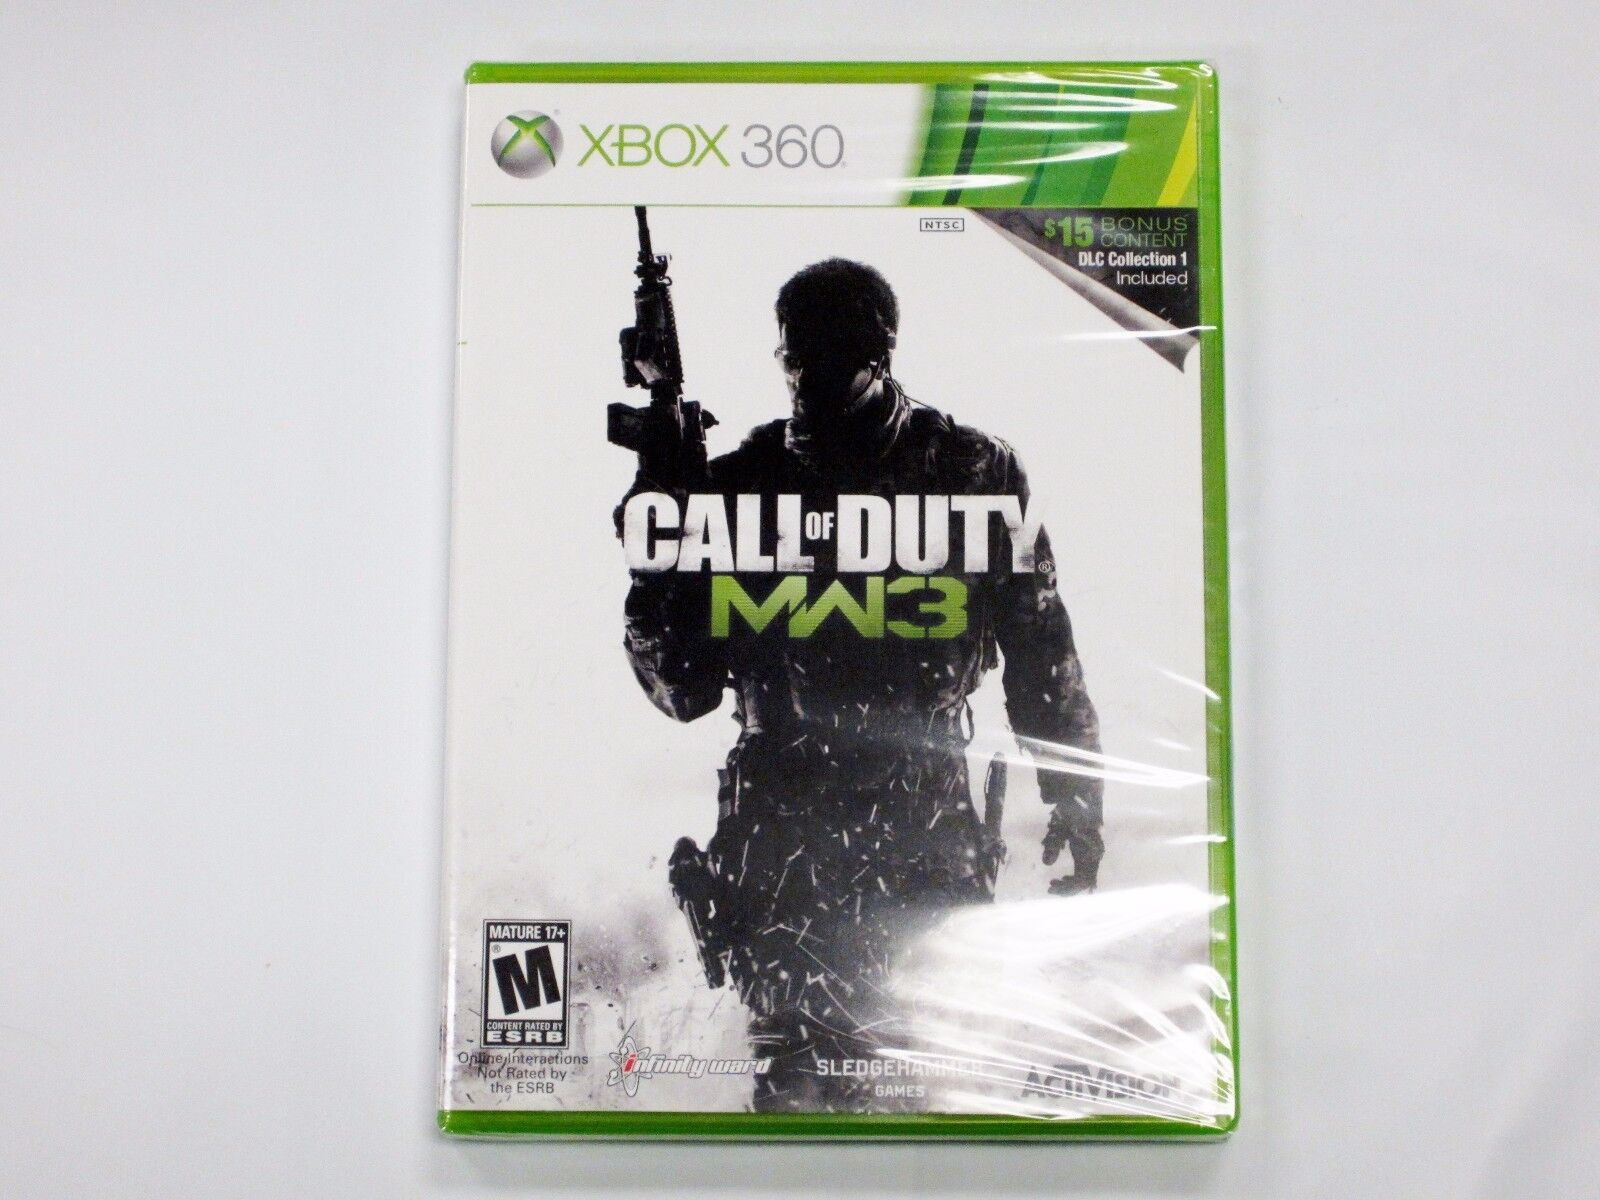 Xbox 360 Games - Call of Duty Modern Warfare 3 With DLC COLLECTION - XBOX 360 New Sealed USA